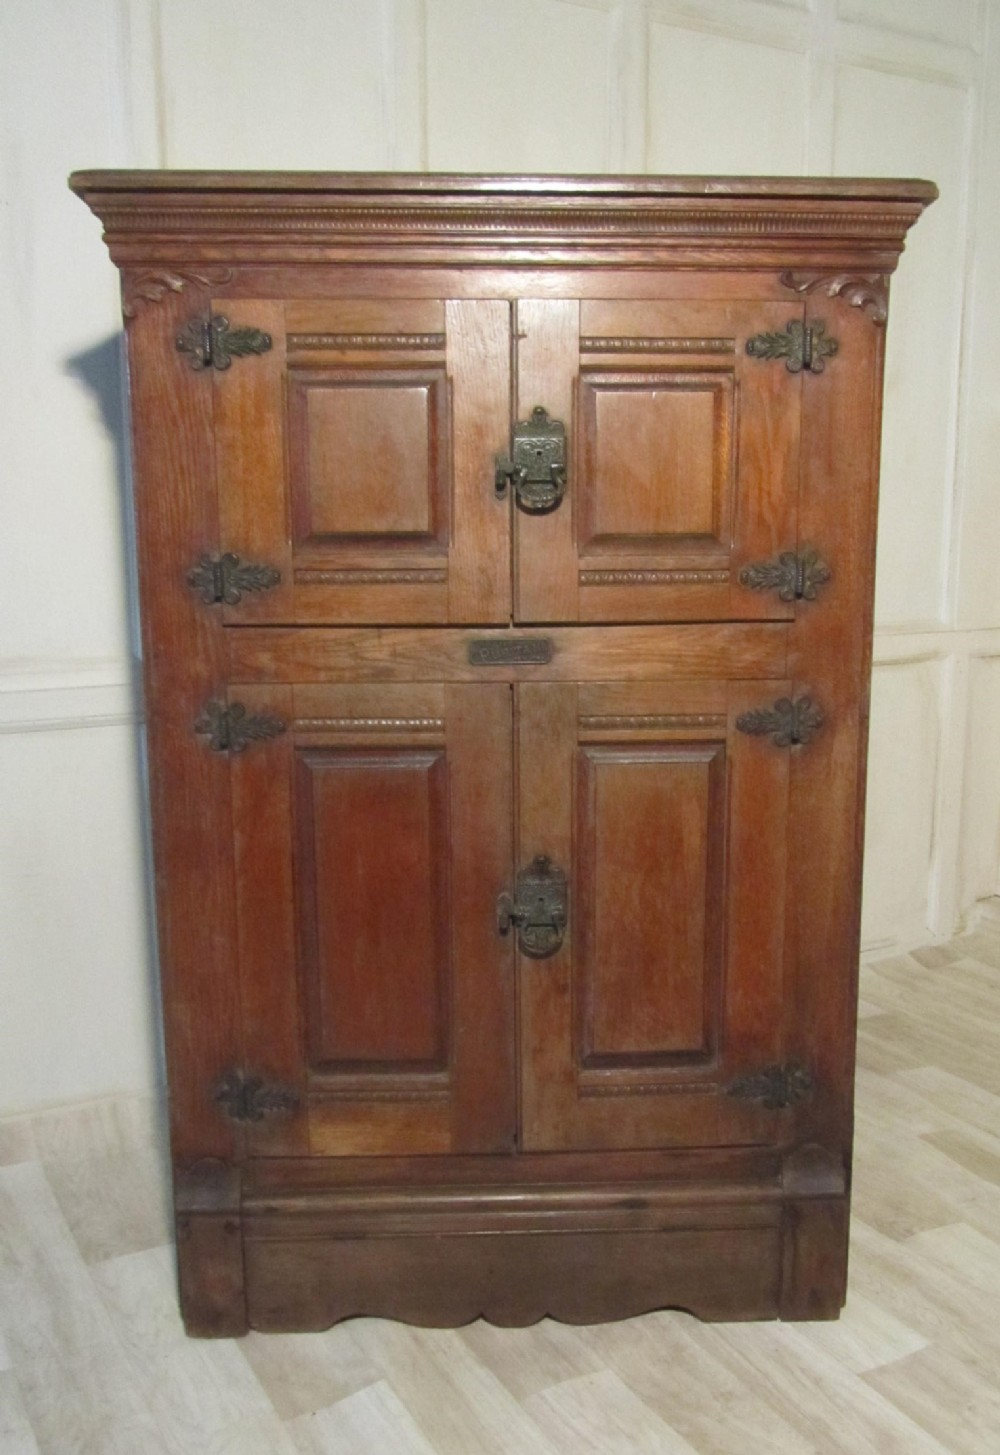 american vintage wooden refrigerator or ice box from the late 19th century